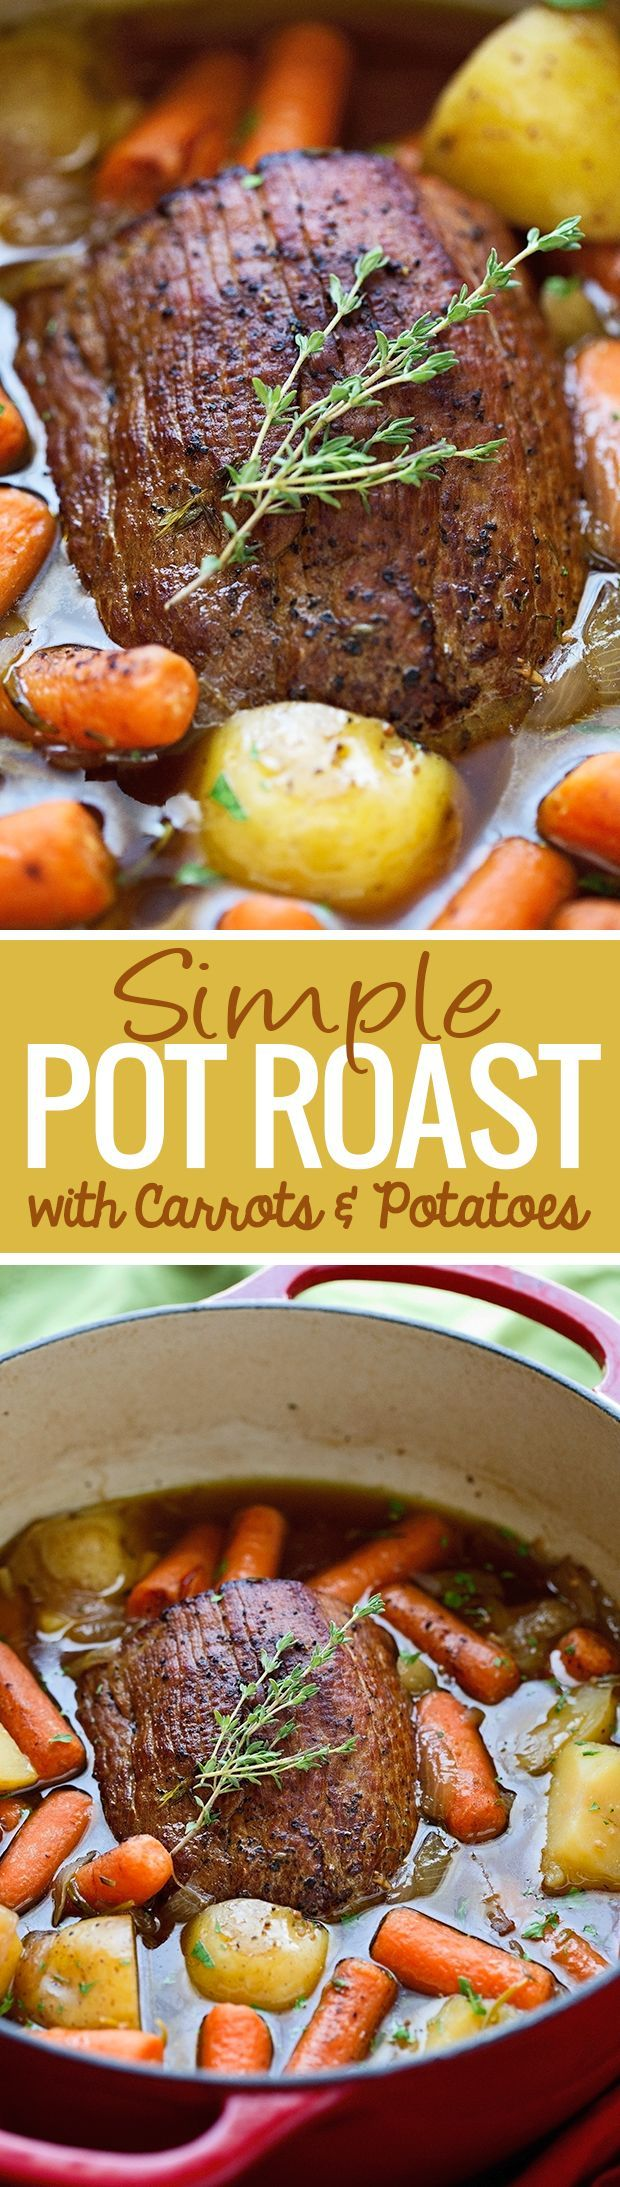 Pot Roast with Carrots and Potatoes - a simple recipe for pot roast that tastes like a french onion soup! The meat is tender and delicious and it requires a simple 15 minutes of presswork! #potroast #roast #beefroast